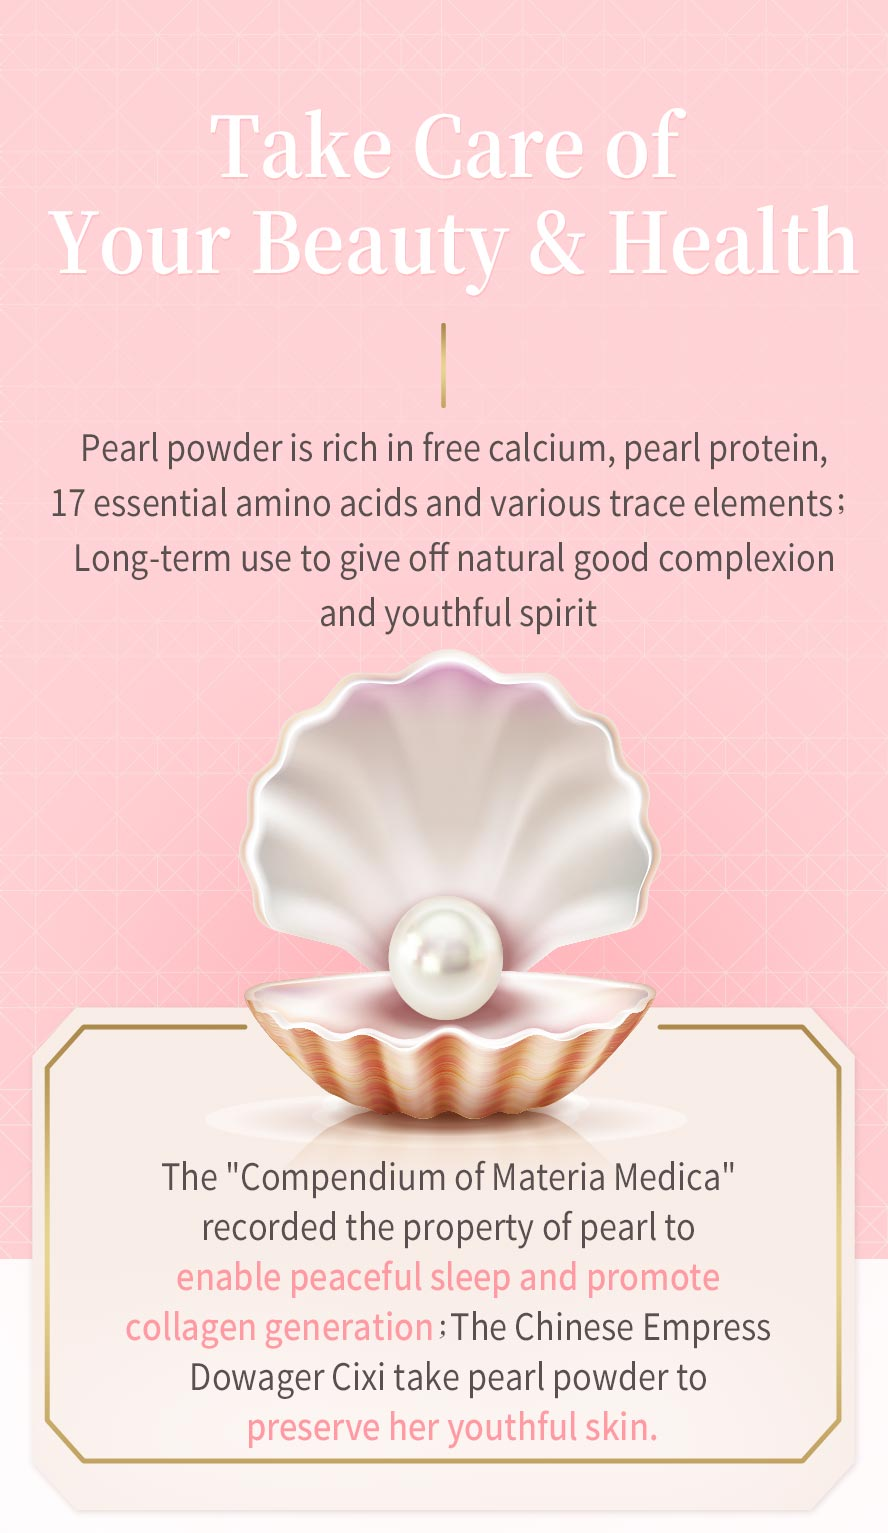 Pearl powder's benefits come from its abundance of calcium, magnesium, and iron, plus a remarkable protein of 17 amino acids, conchiolin.